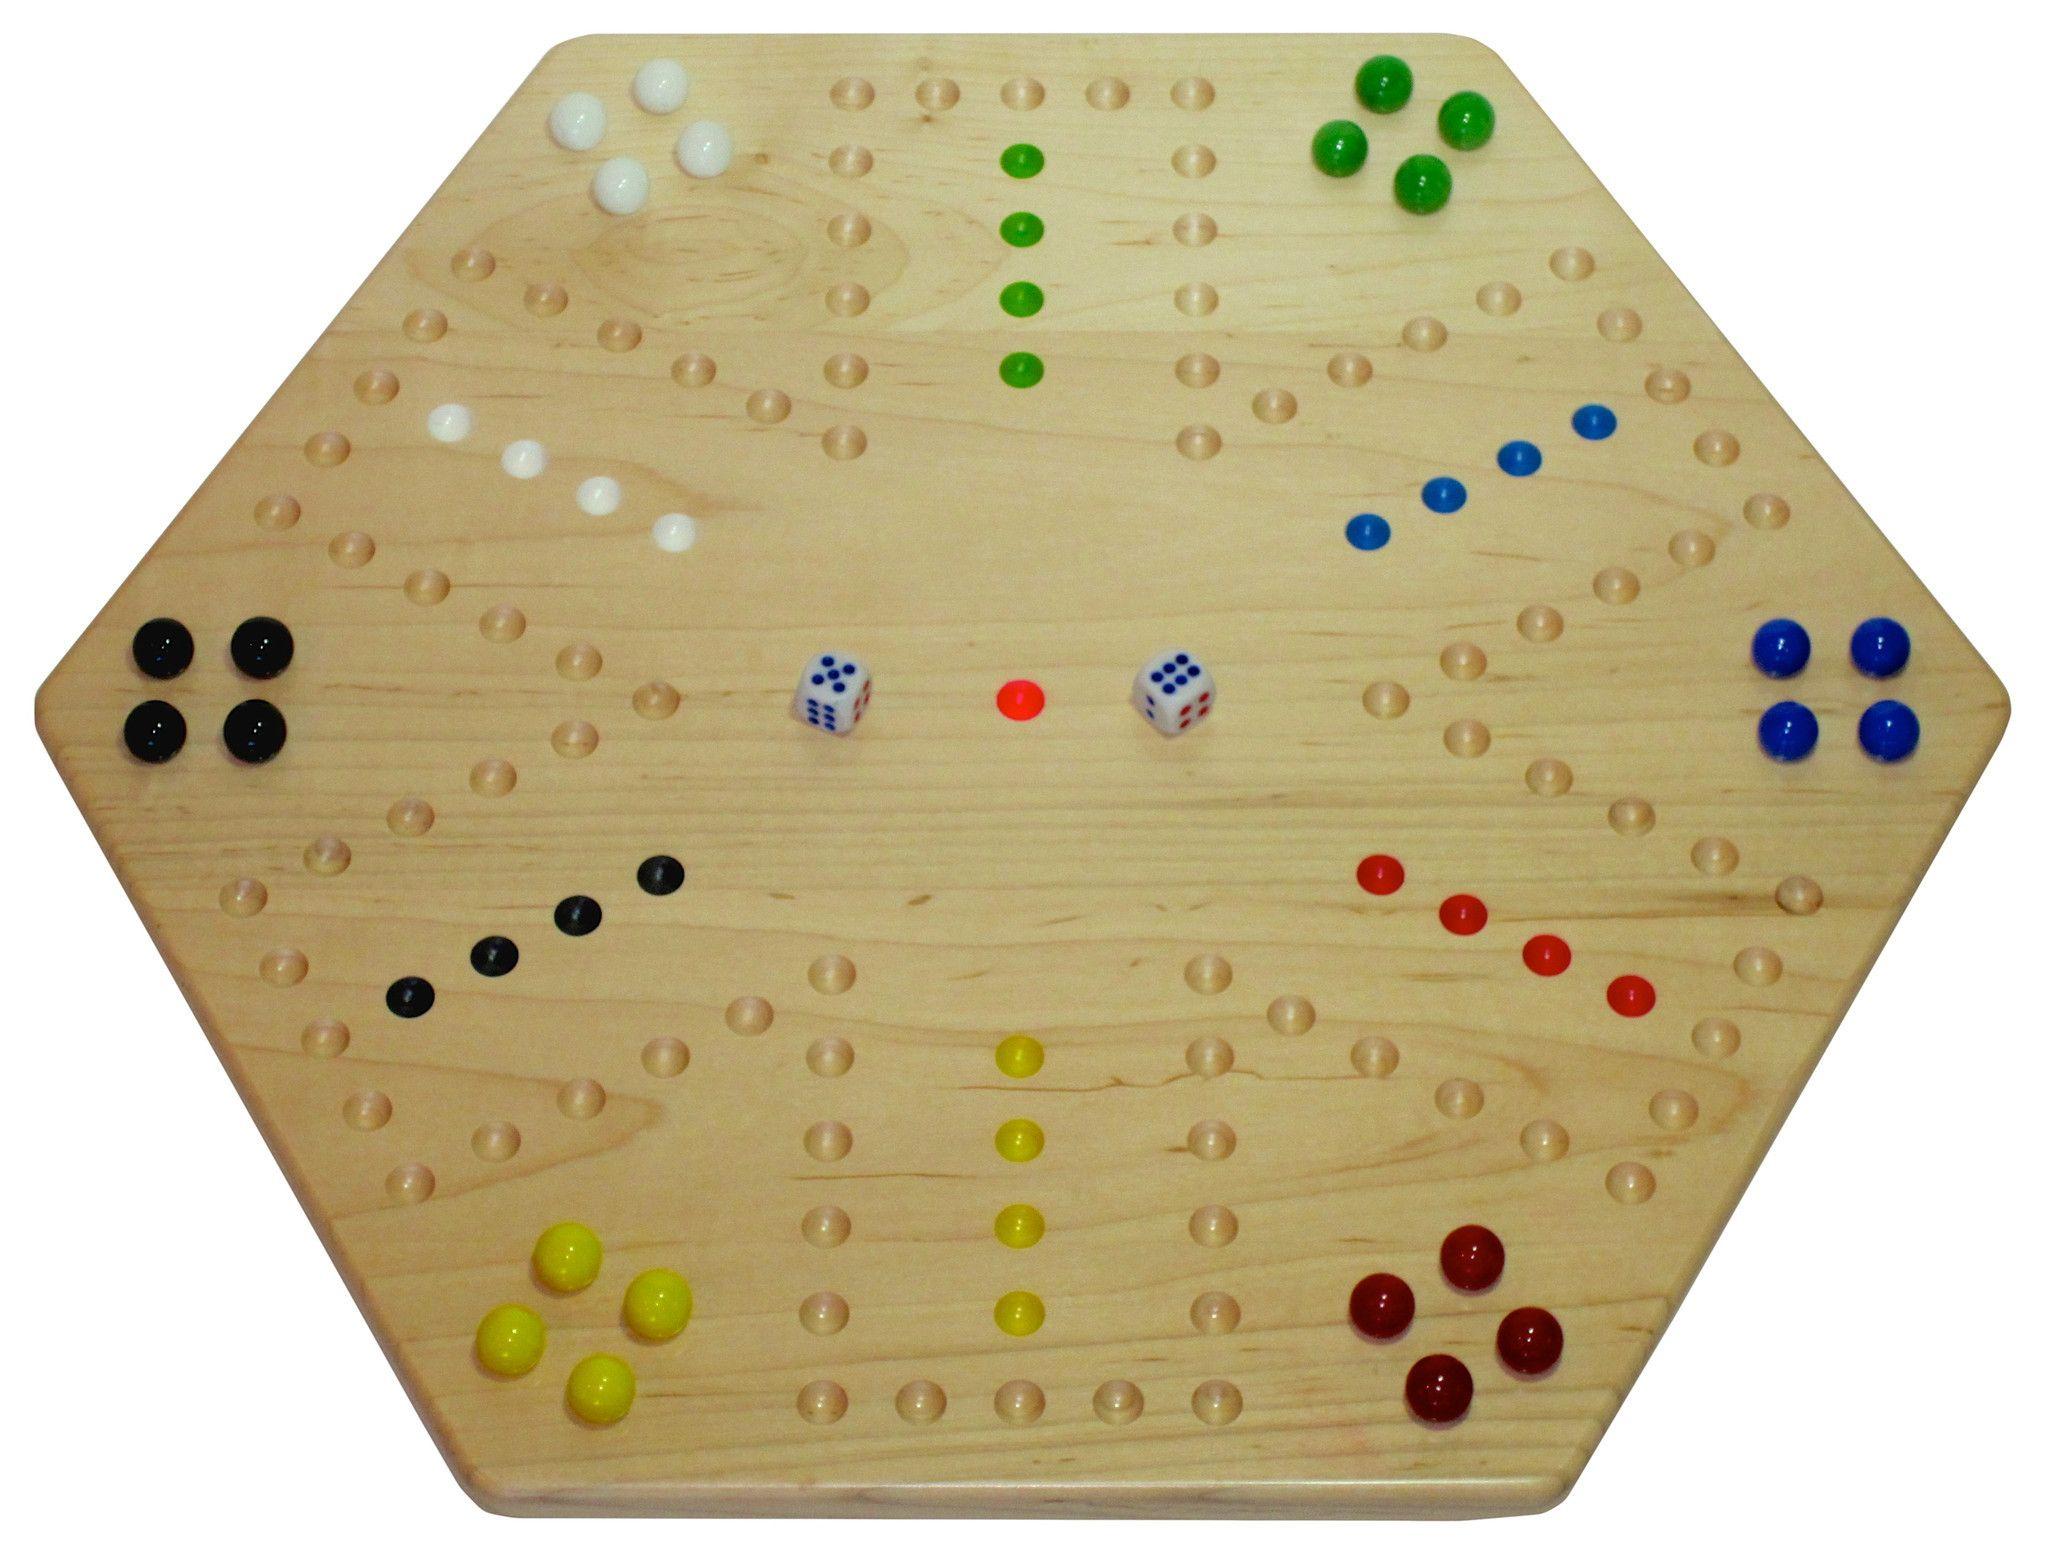 Comprehensive image with printable template for aggravation game